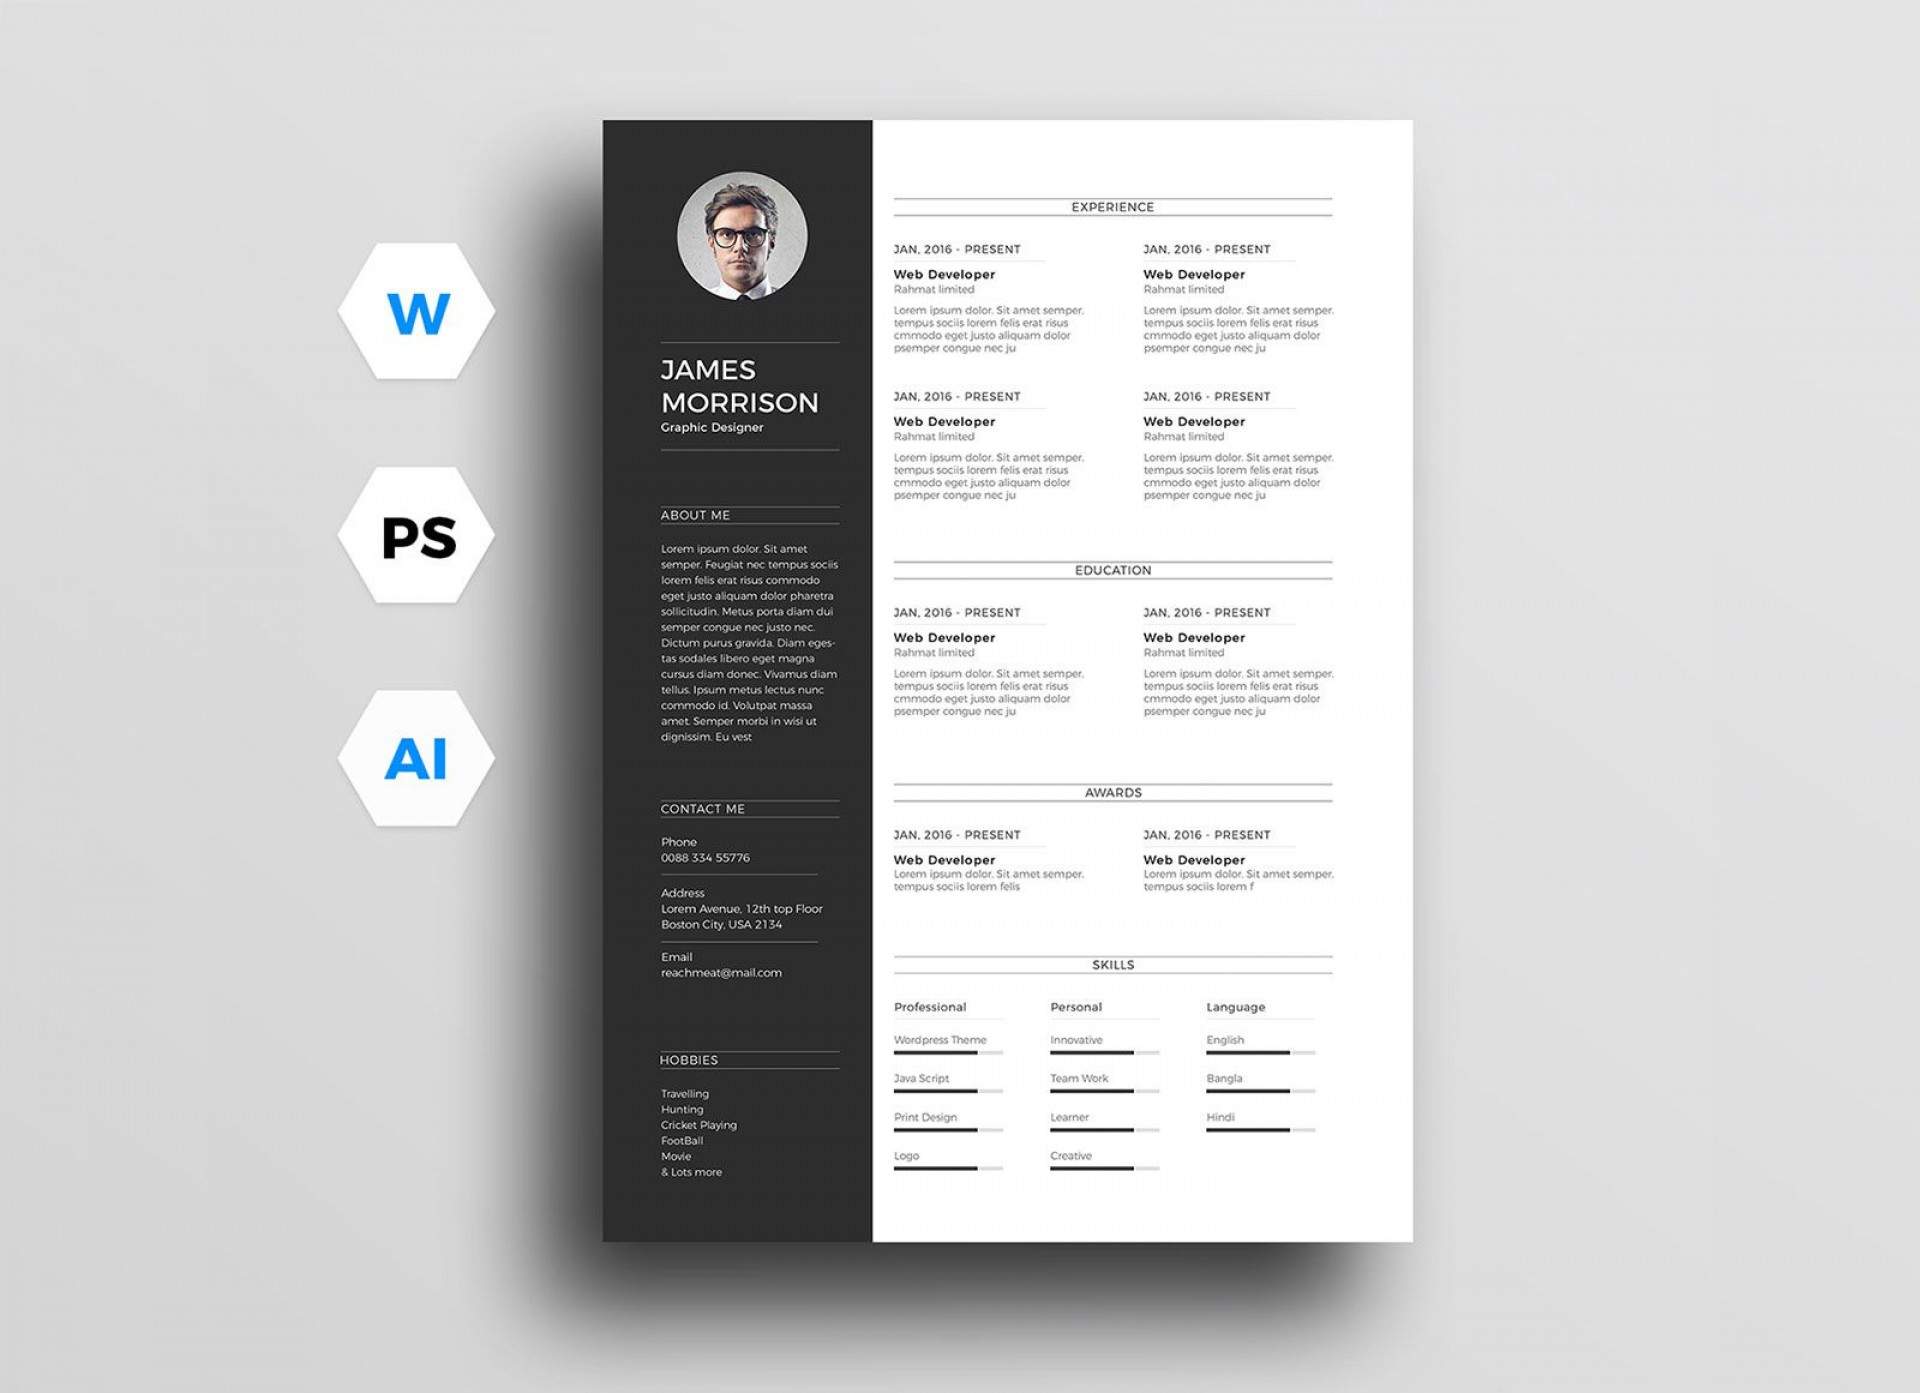 003 Archaicawful Photoshop Cv Template Free Design  Modern Psd Resume Download1920